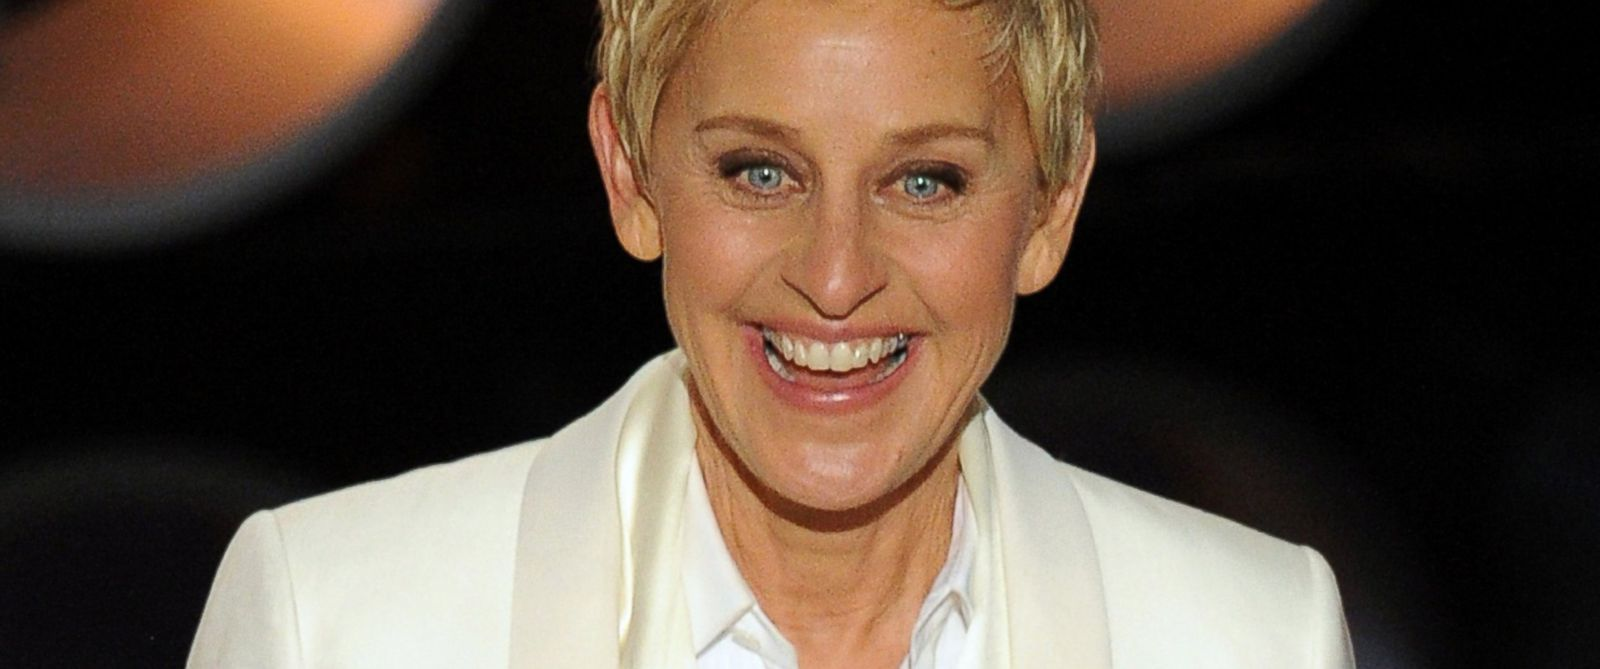 PHOTO: Host Ellen DeGeneres speaks onstage during the Oscars at the Dolby Theatre on March 2, 2014 in Hollywood, Calif.